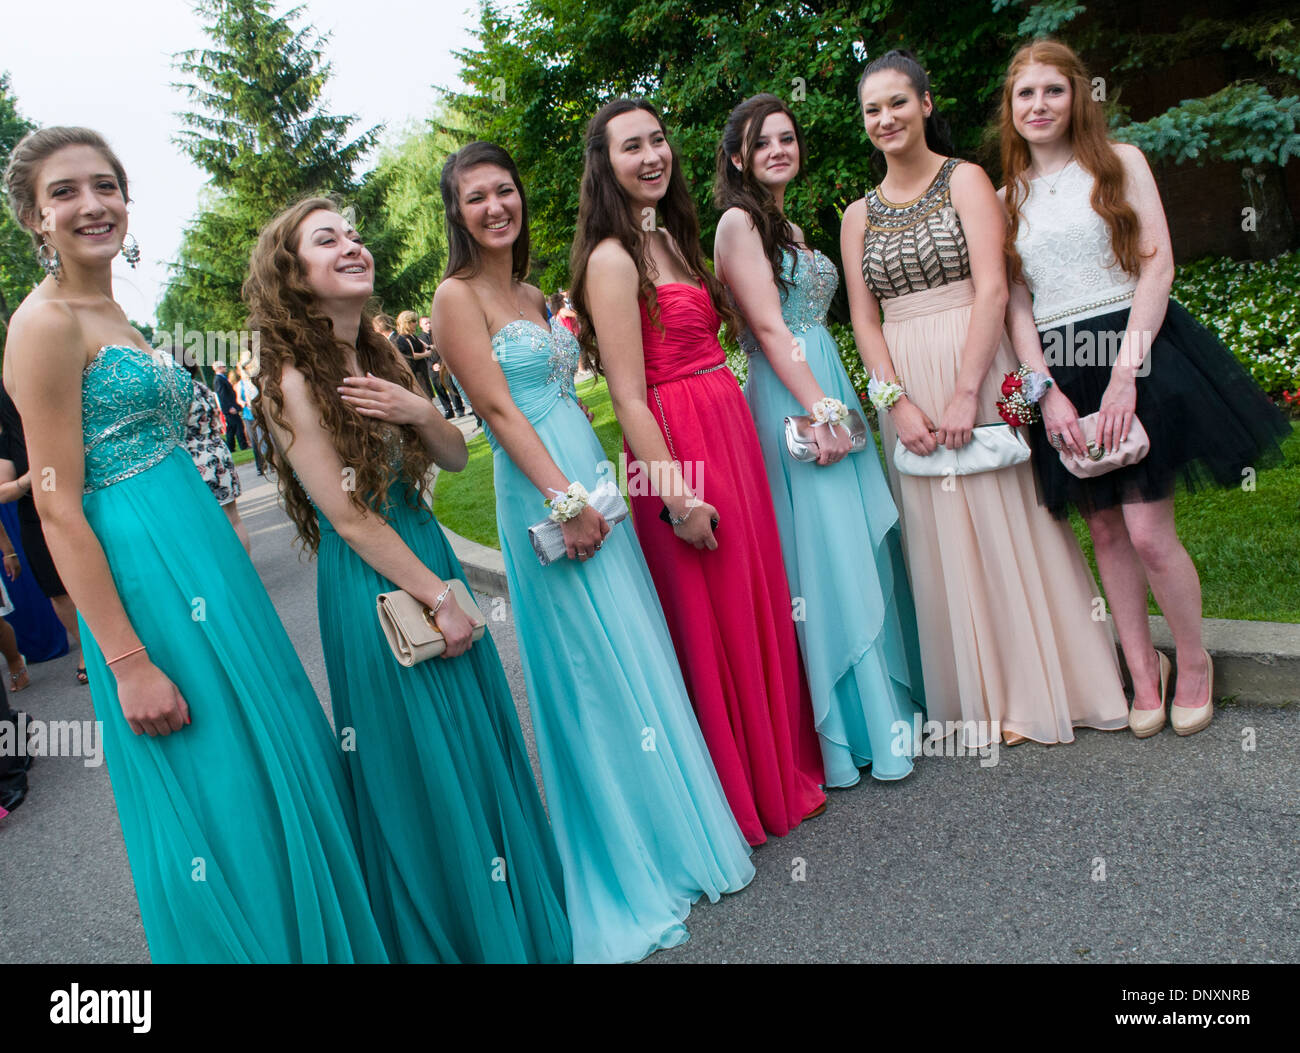 High school prom evening party Canada Stock Photo: 65126751 - Alamy